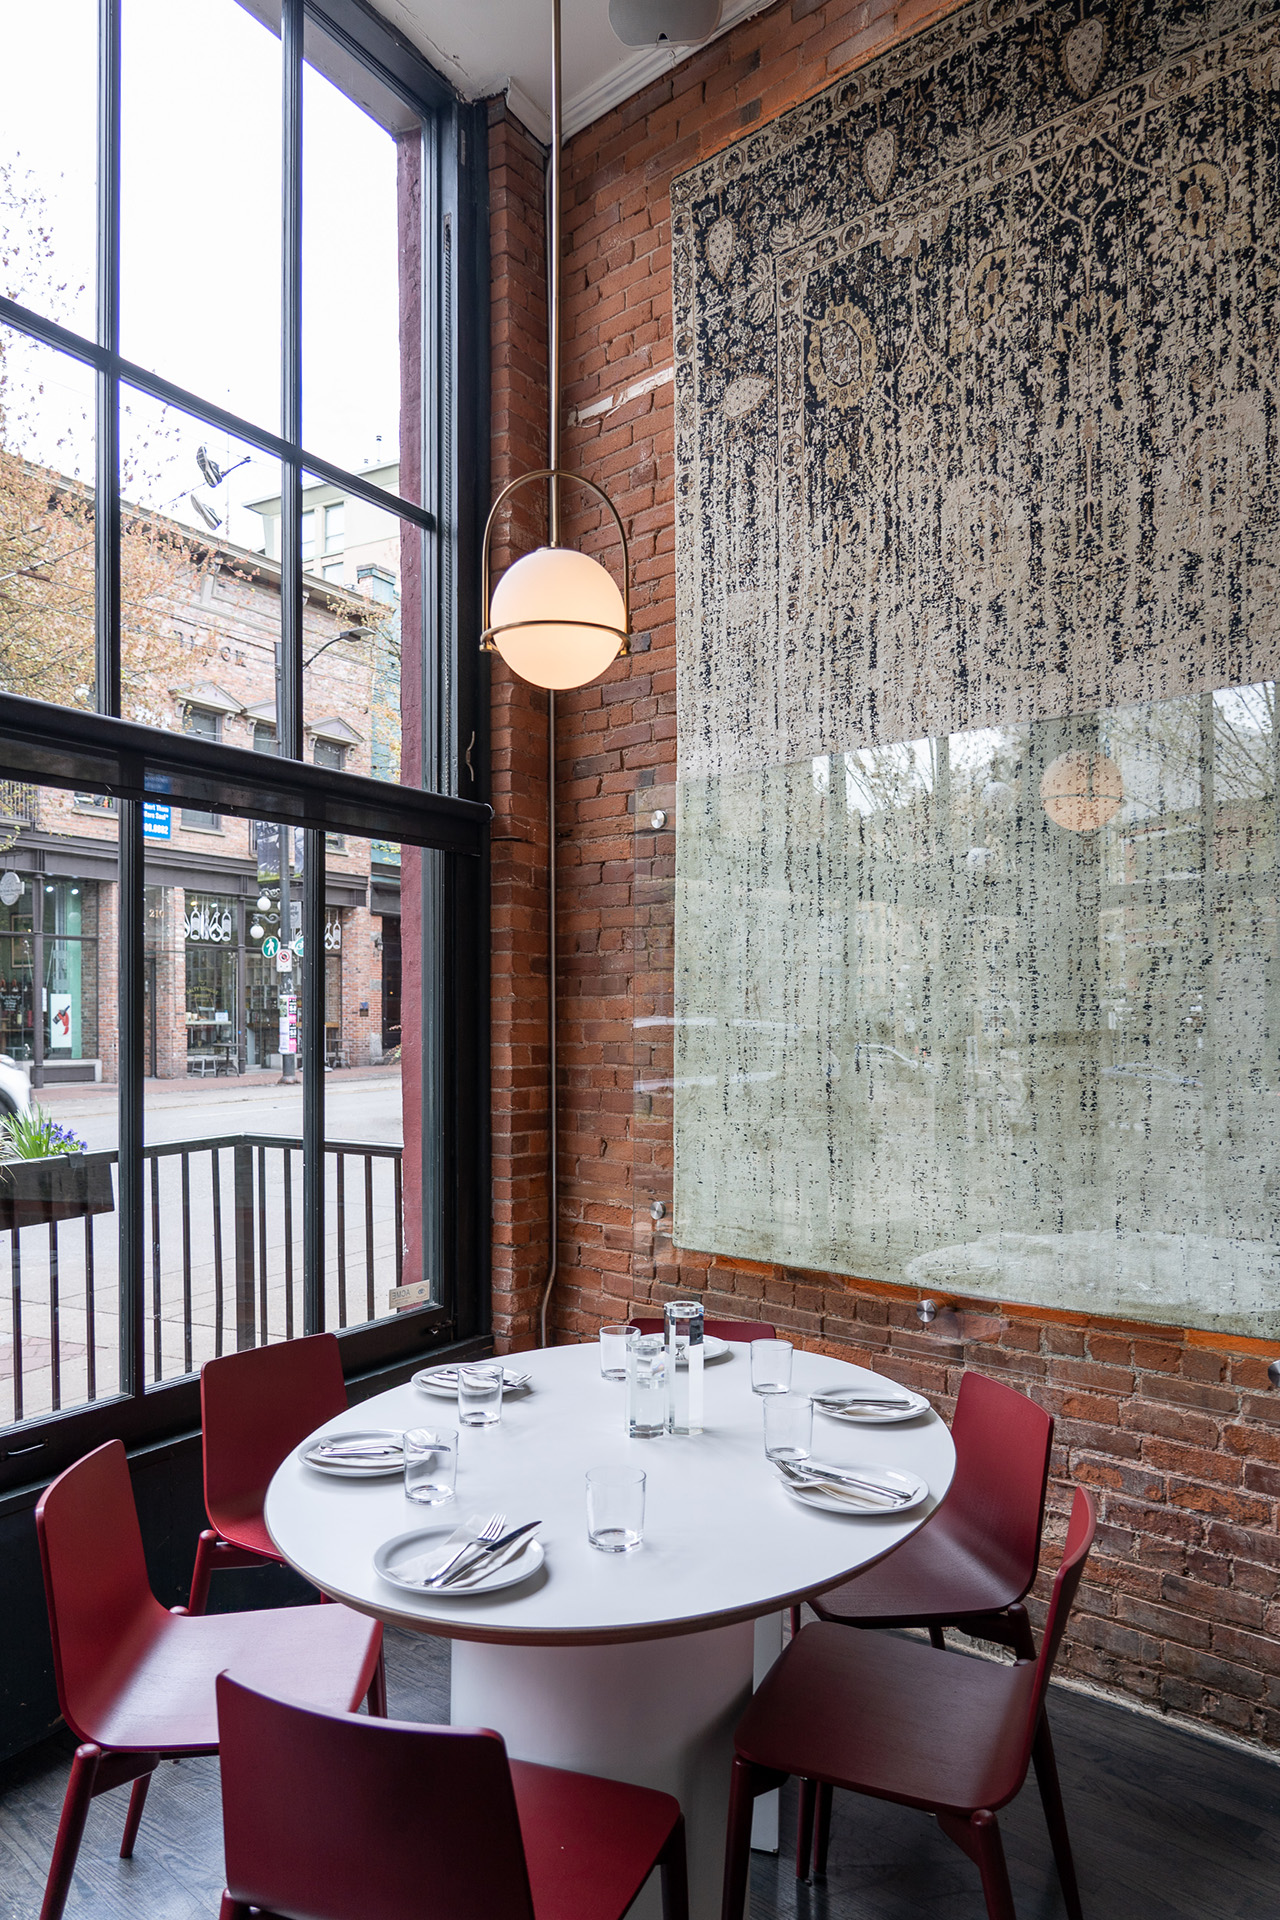 Statement rug anchors the restaurant's characteristic decor.